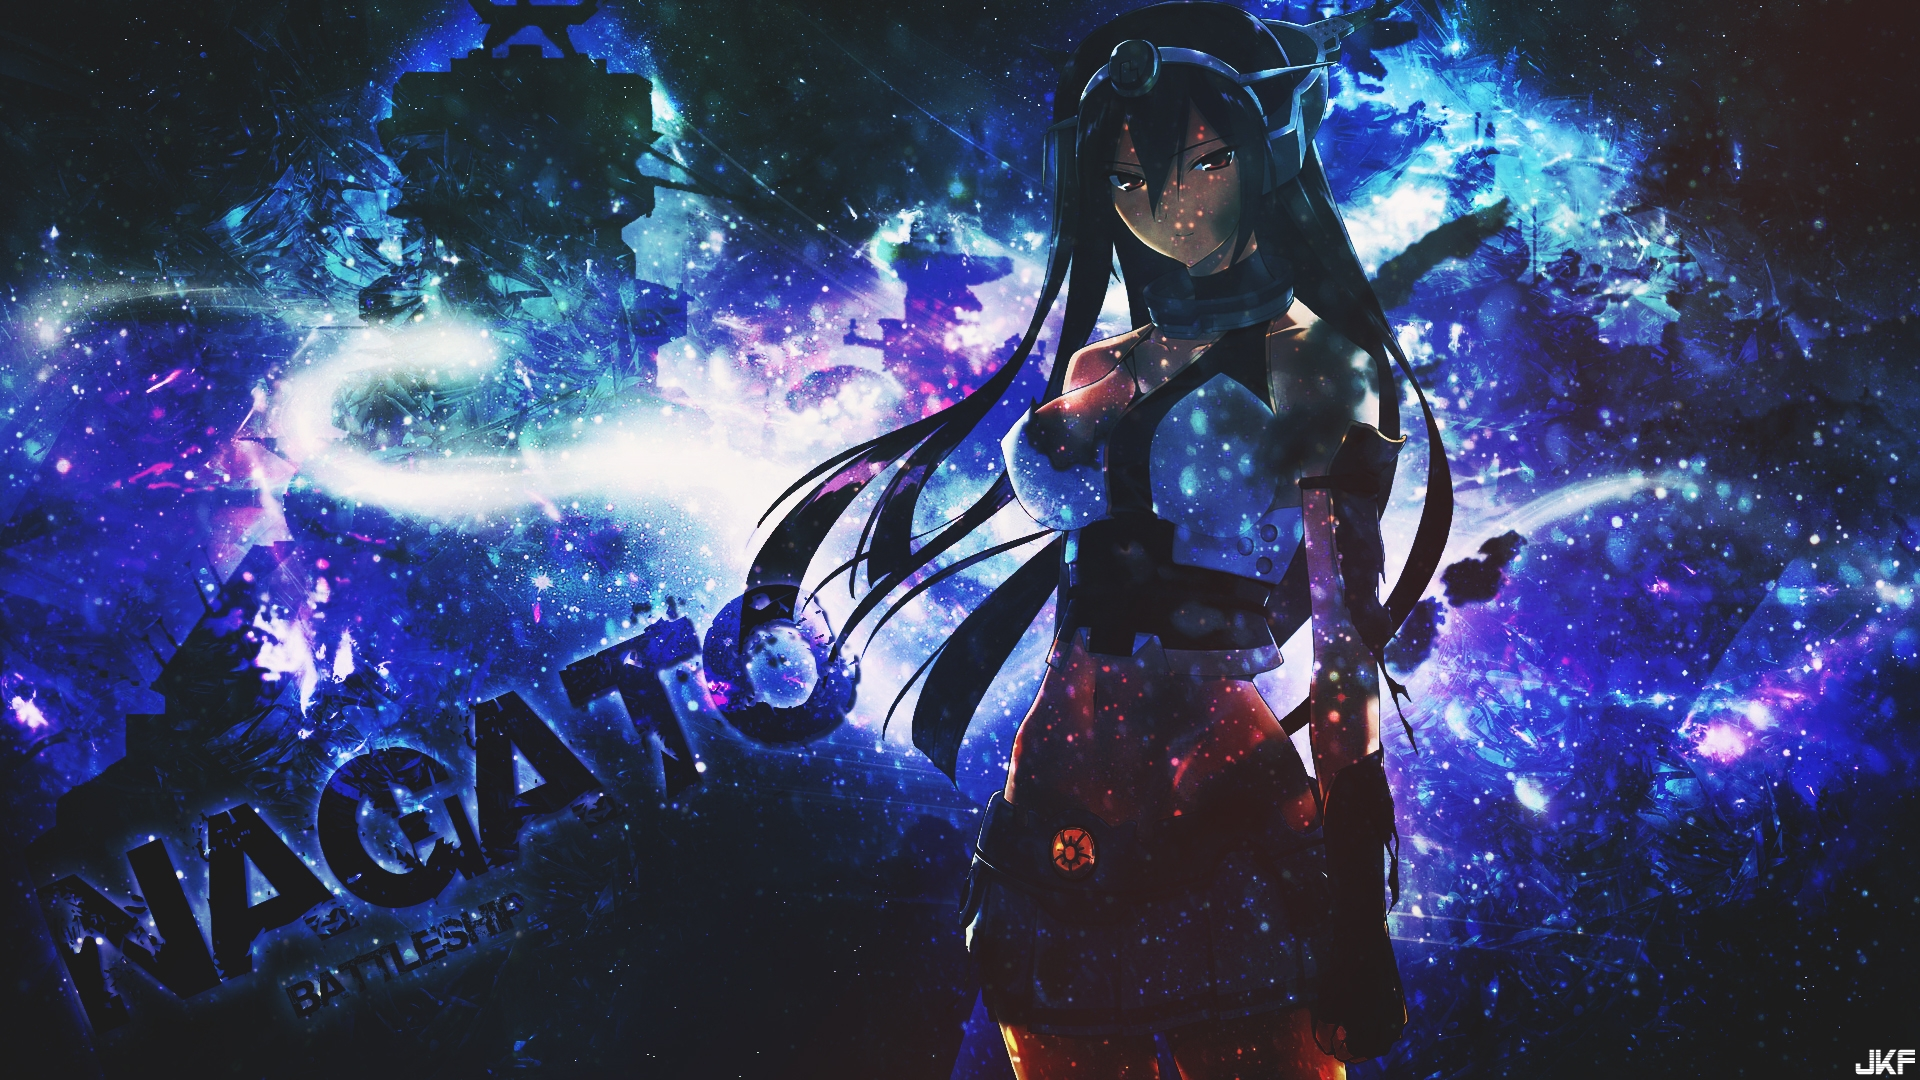 nagato_wallpaper_by_dinocojv-d8m1boz.jpg